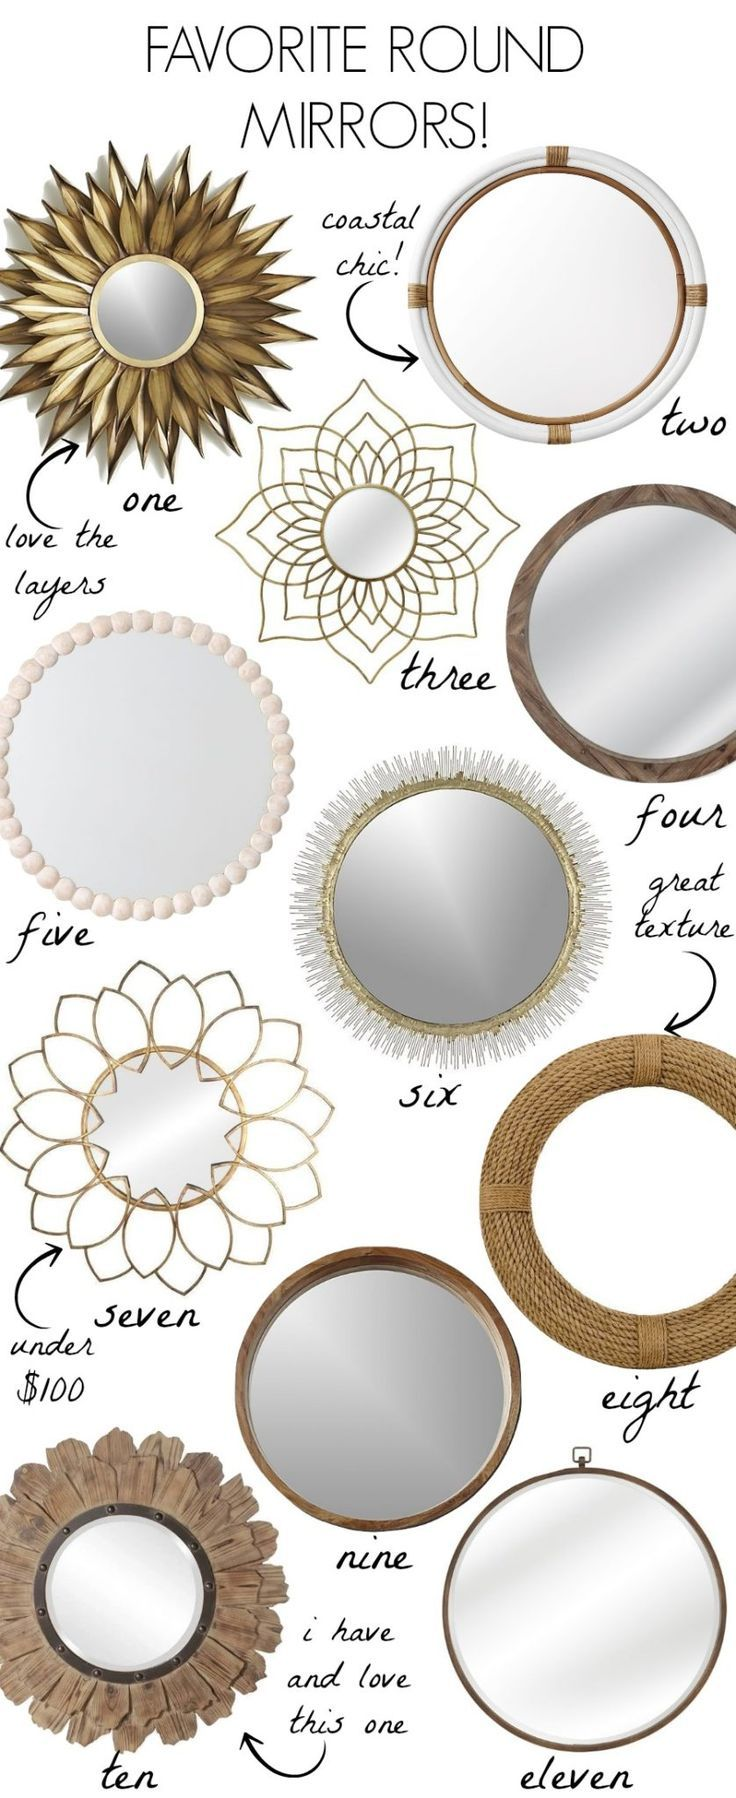 Loving These Gorgeous Round Mirrors Large Round Mirrors Wood Mirrors Gold Mirrors So Many Beautiful Round Gold Mirror Mirror Frame Diy Round Mirror Decor